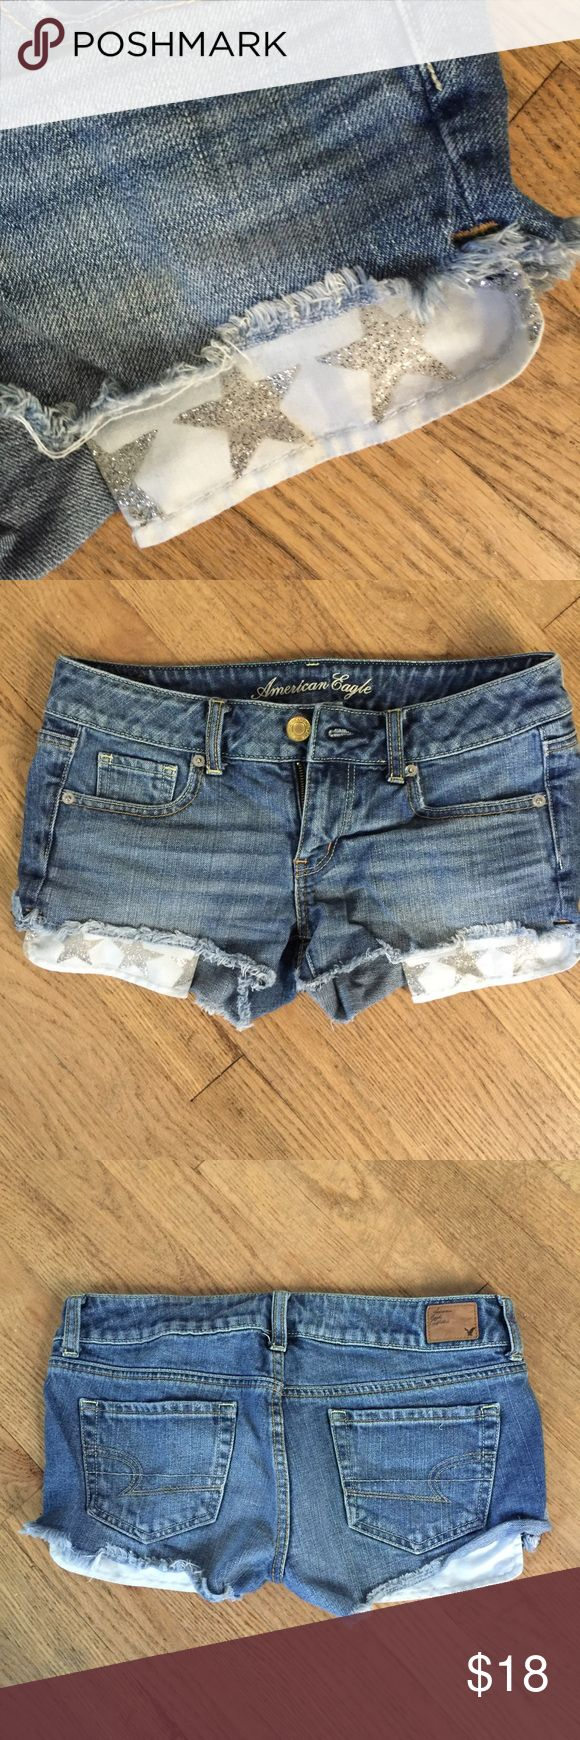 American Eagle Glitter Star Festival Shorts SALE Absolutely adorable festival shorts with glitter stars appliqué on the pockets. Size 4 with a touch of stretch. Perfectly patriotic or just a fun way to stand out! American Eagle Outfitters Shorts Jean Shorts